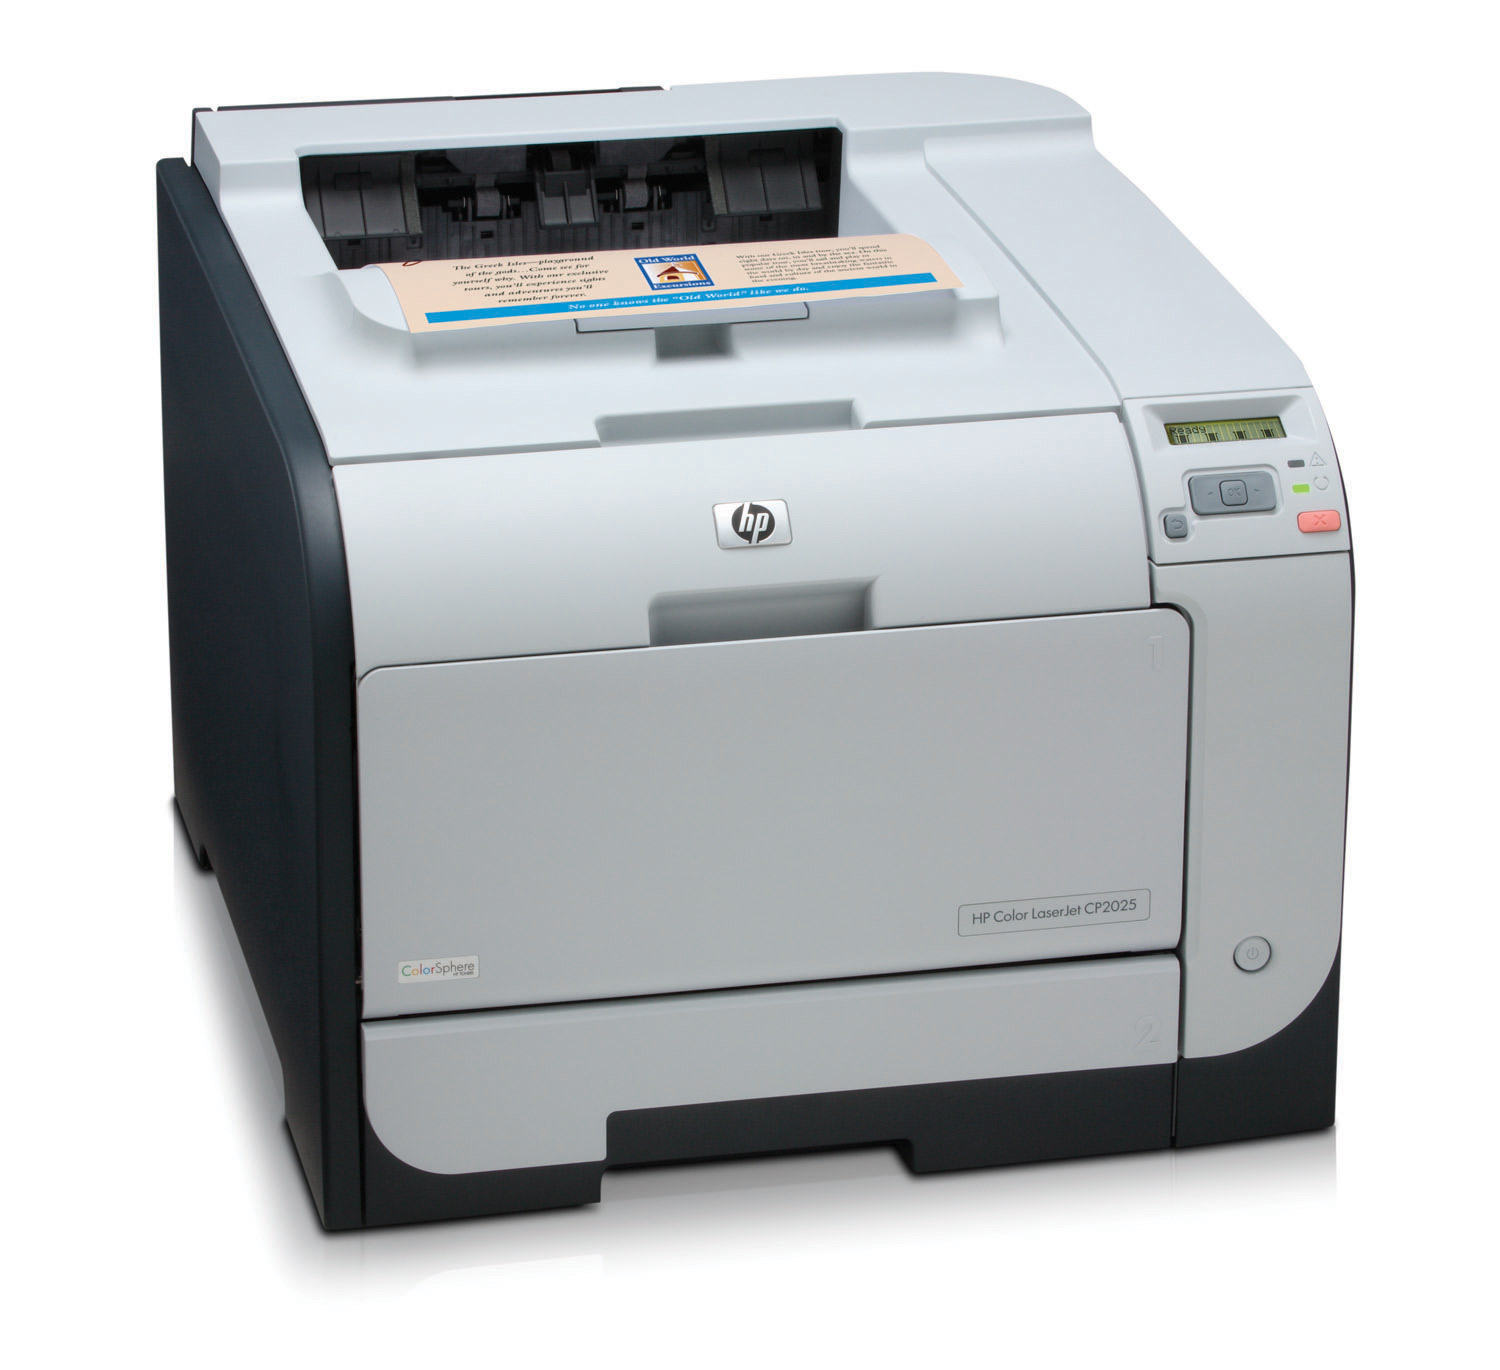 Want automatic two-sided printing? Buy the HP Color LaserJet CP2025dn ...: http://www.amazon.com/HP-Laserjet-CP1518NI-Printer-Government/dp/B00168RF6C